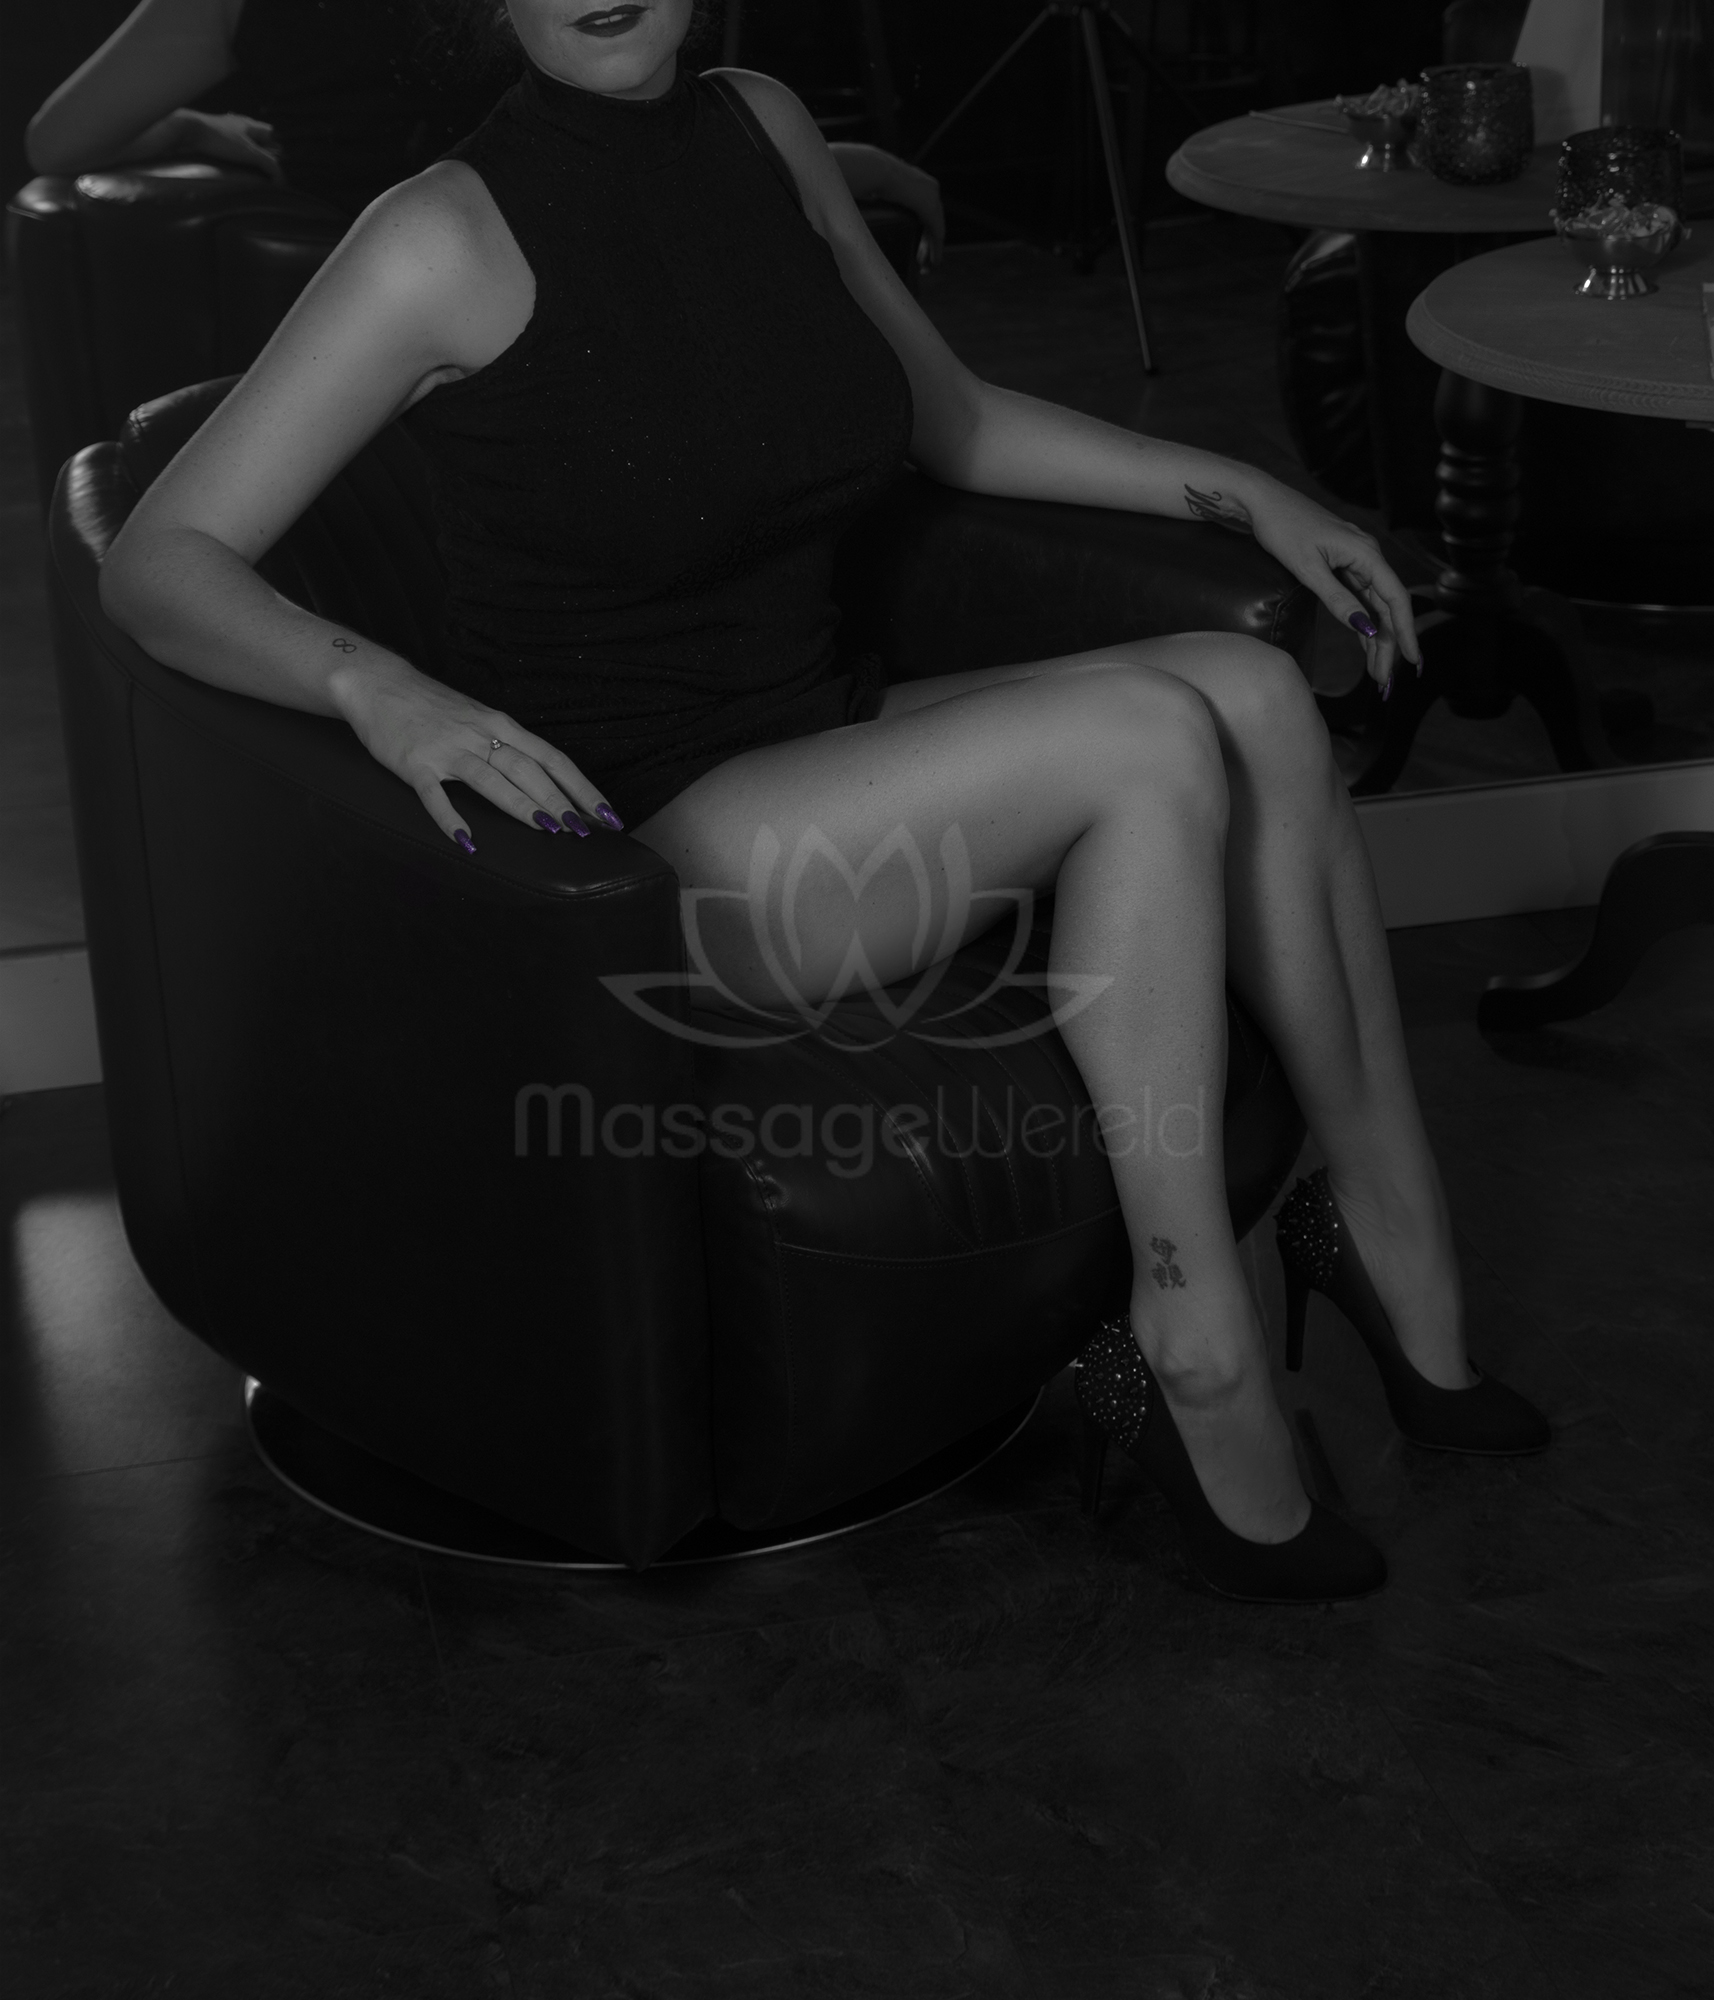 sexhuis den haag happy emding massage